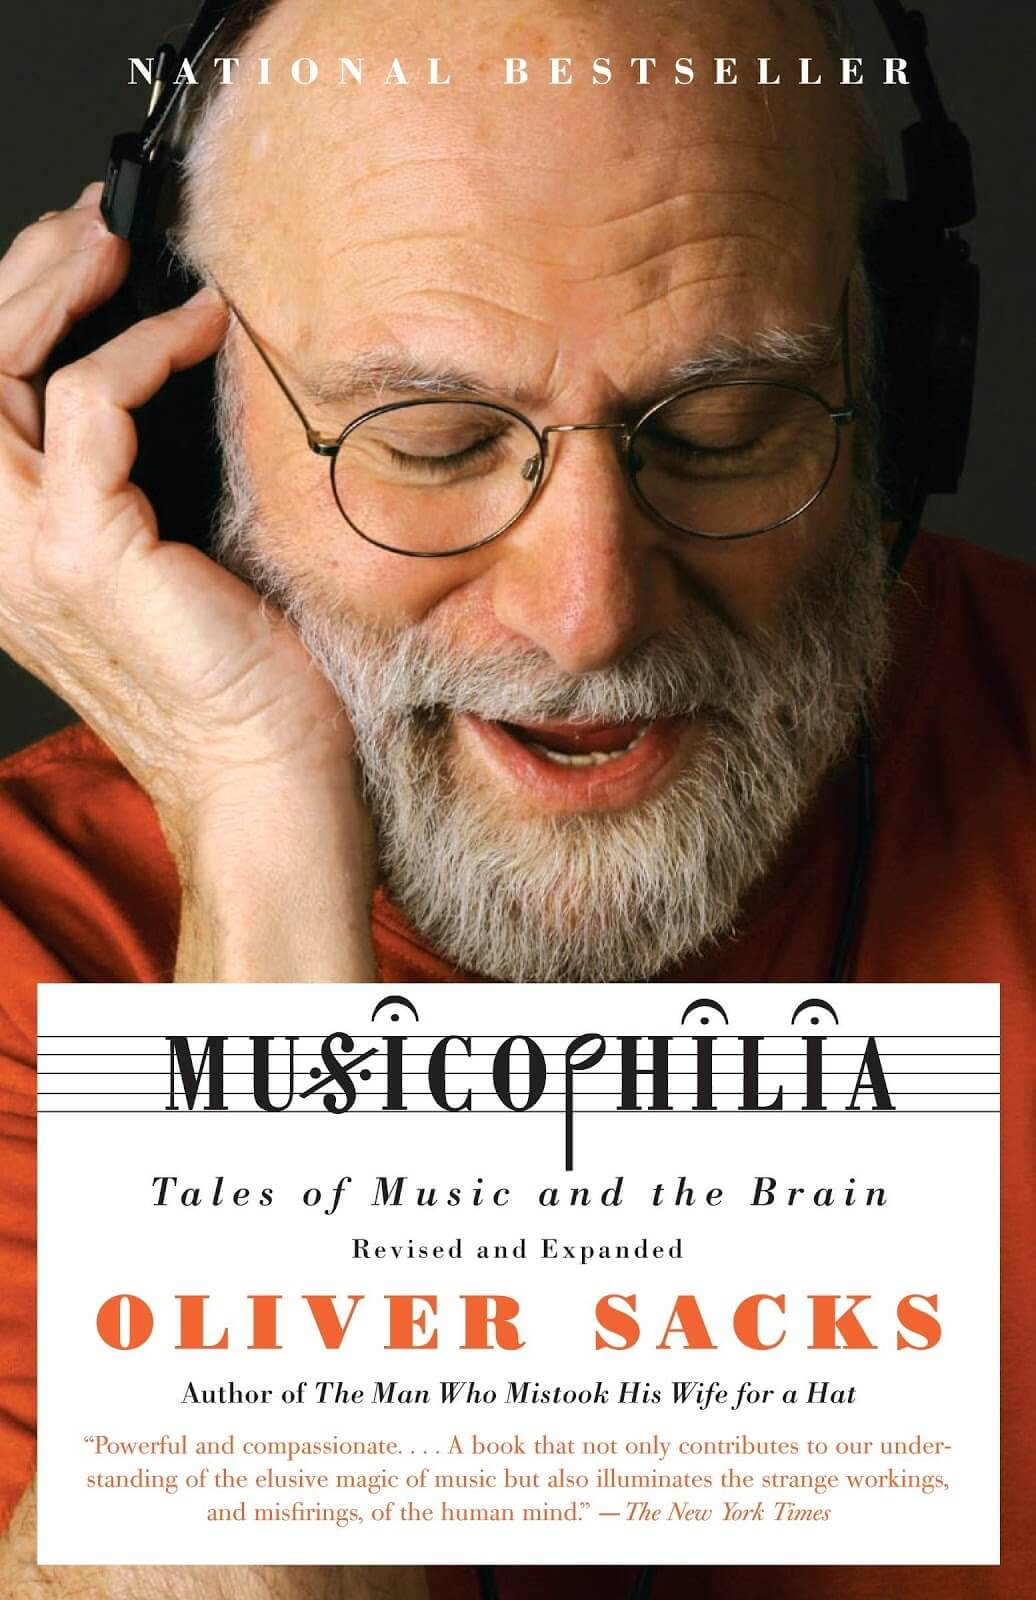 Book cover with an elderly man listening to music